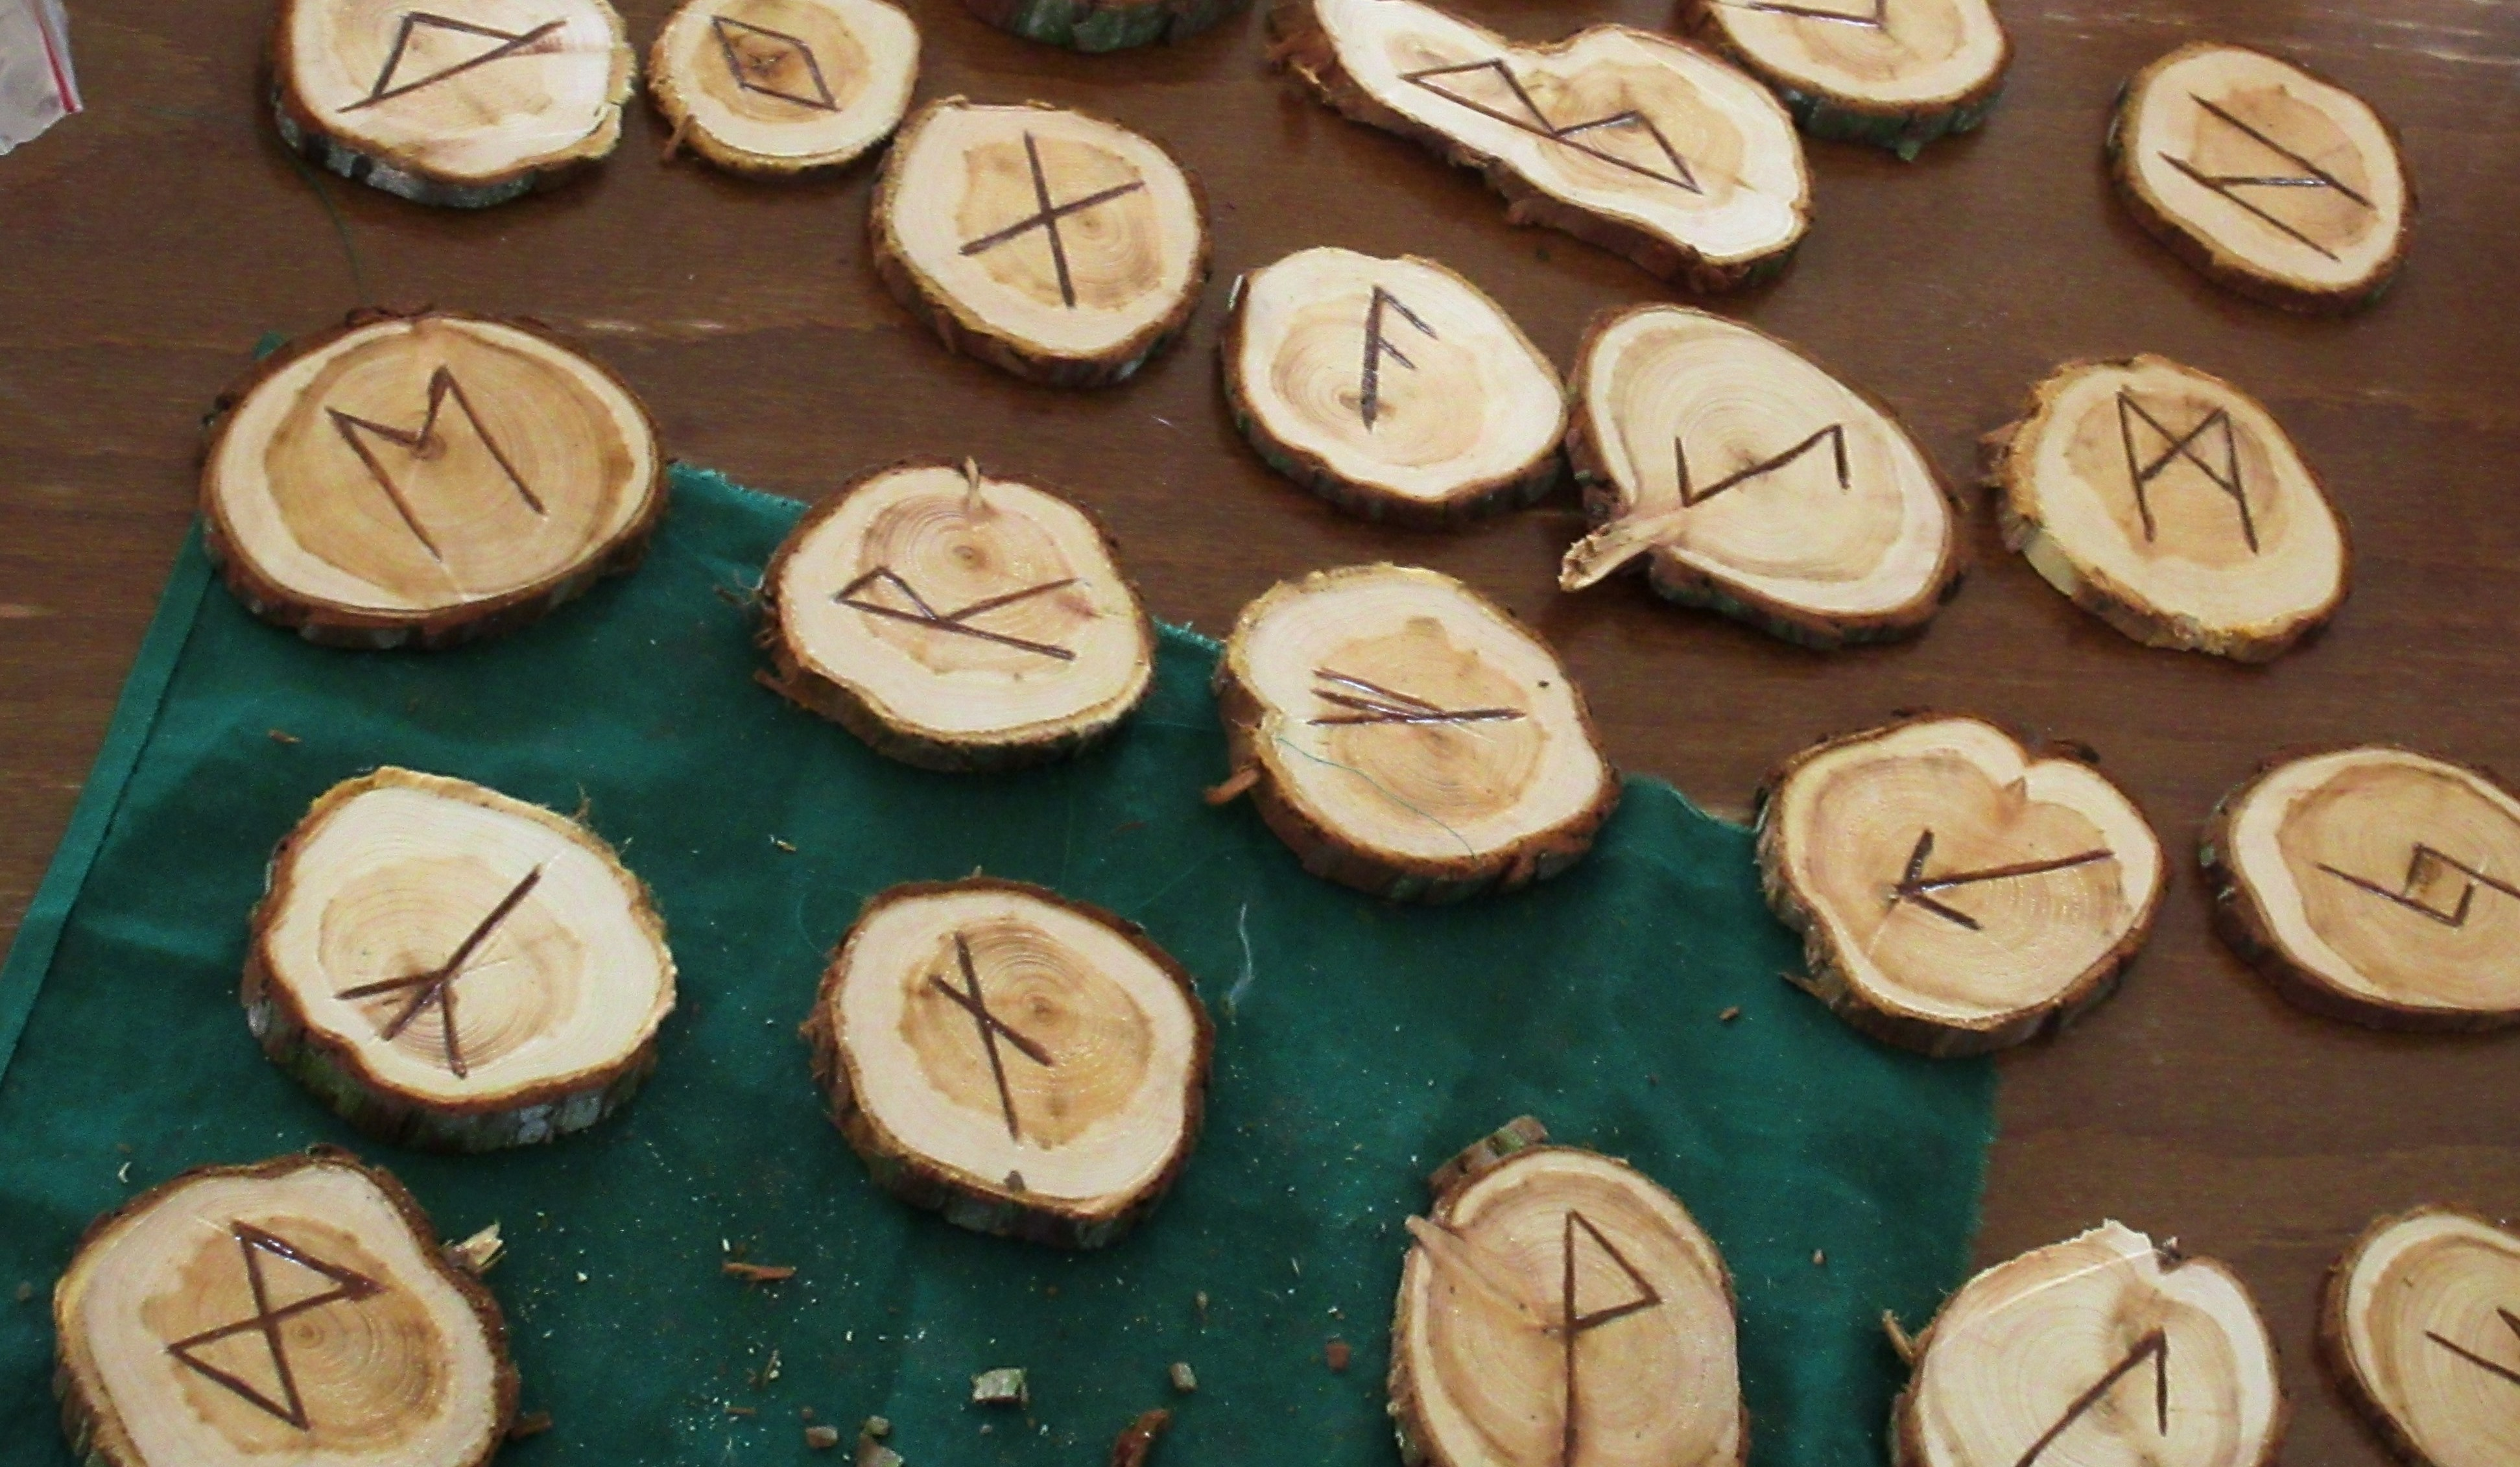 Sigil work with the Runes of the Elder Futhark